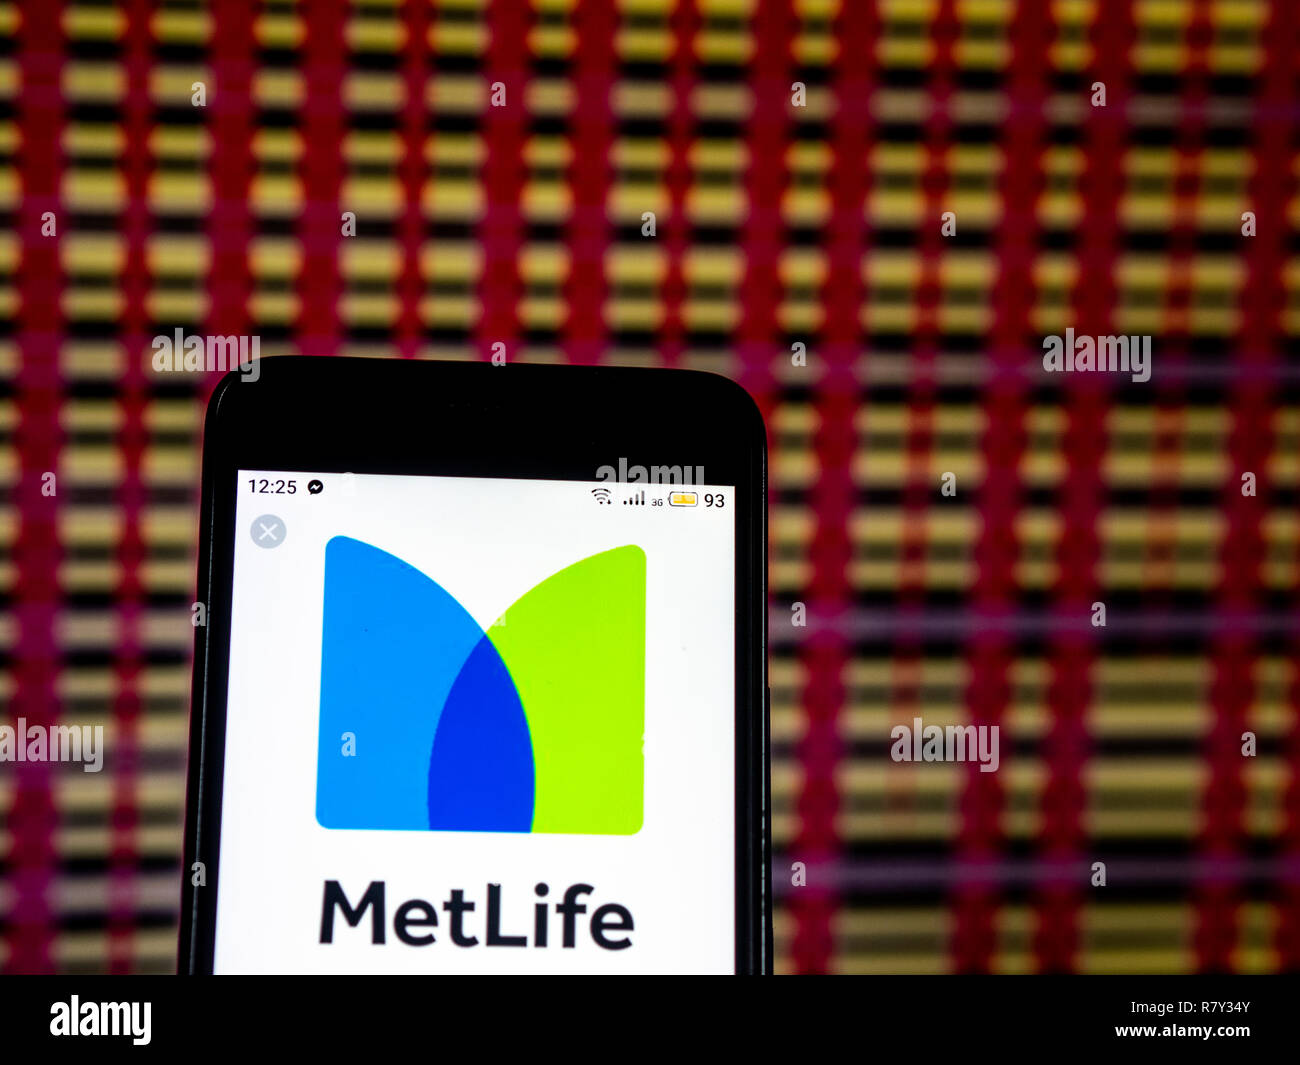 Metlife Life Insurance >> Metlife Life Insurance Company Logo Seen Displayed On Smart Phone